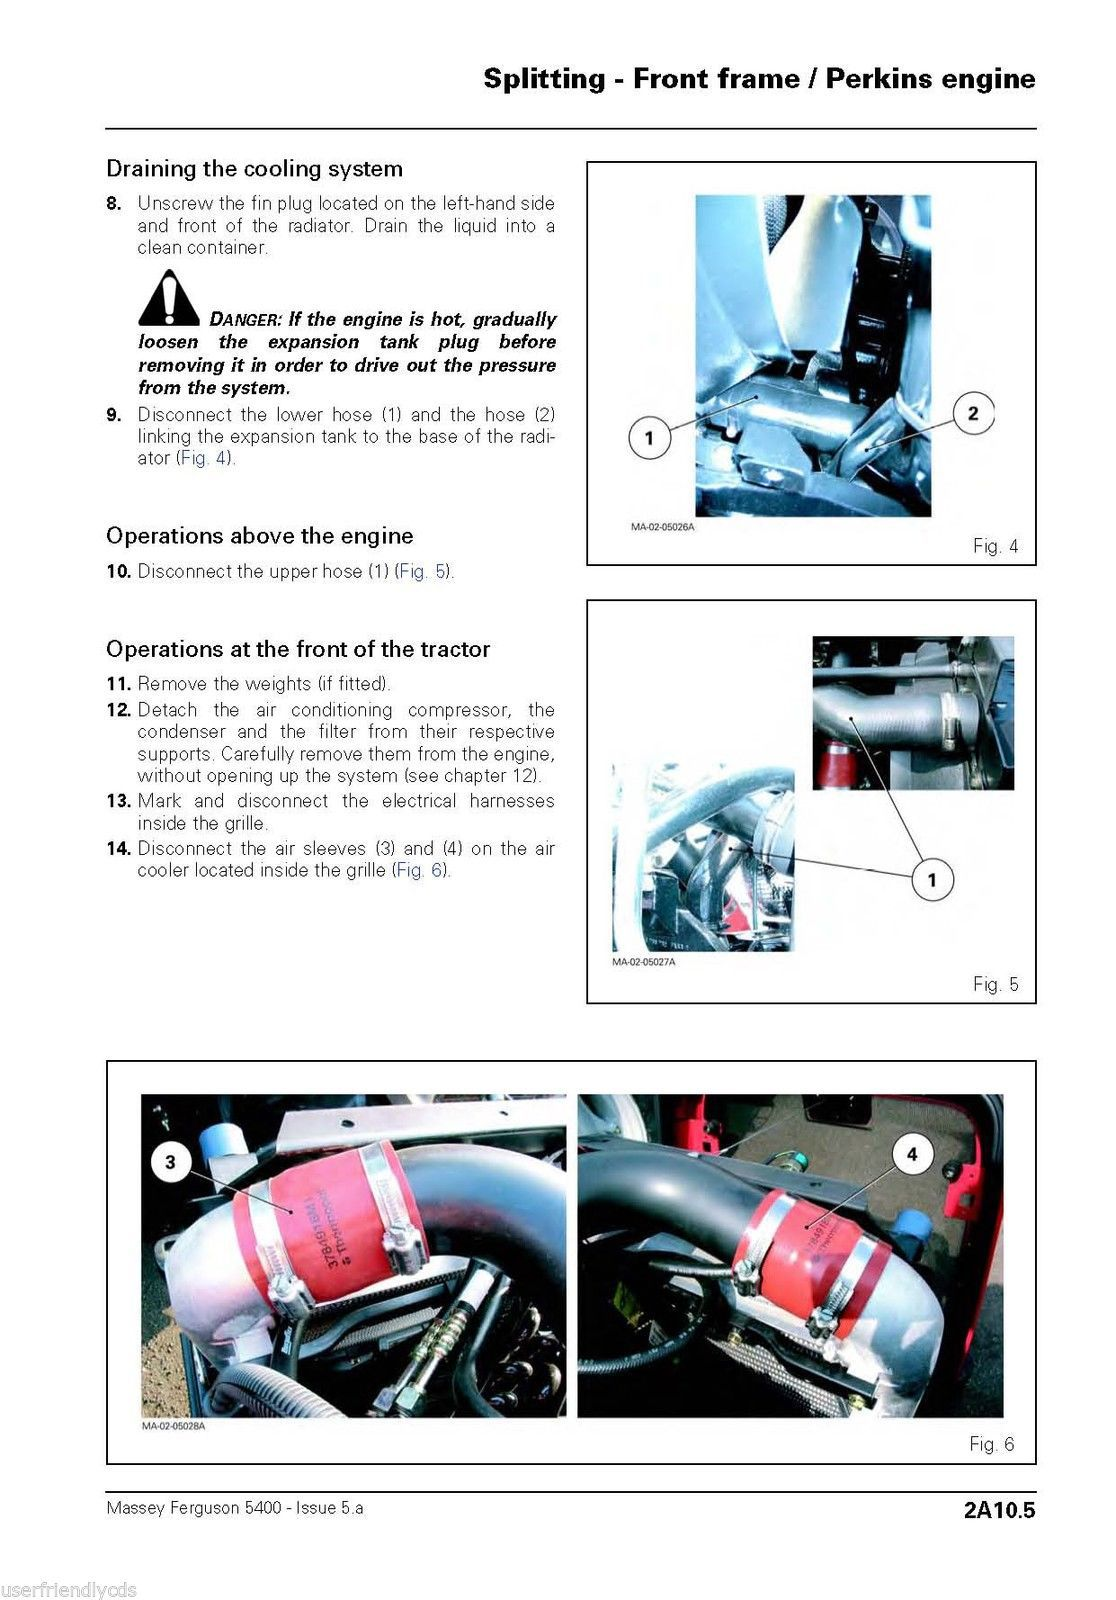 Massey Ferguson MF 5470 5460-SA 5470-SA 5475-SA  Tractors Shop Service Manual CD image 7